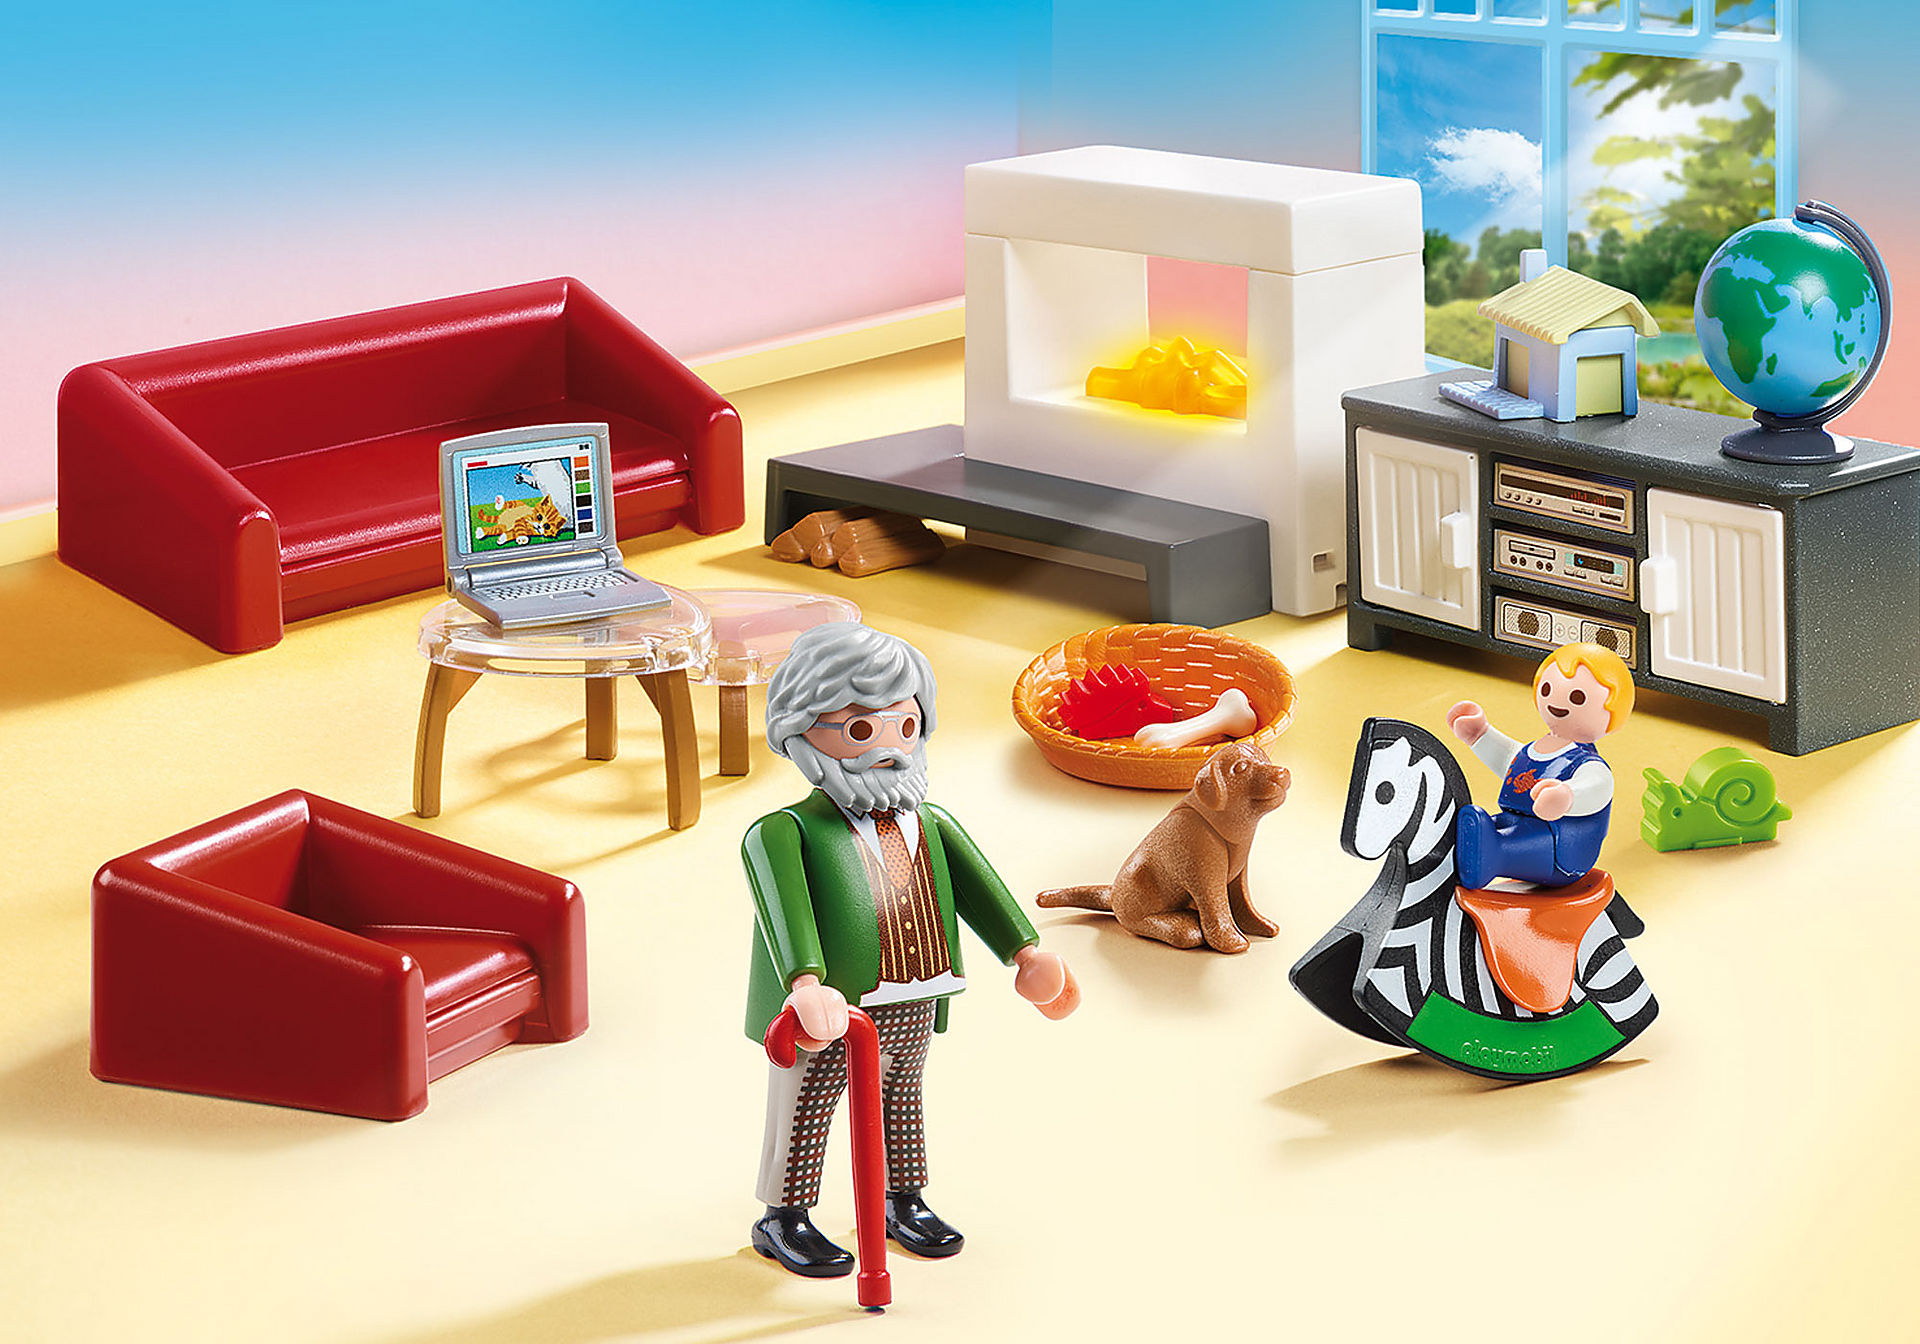 http://media.playmobil.com/i/playmobil/70207_product_detail/Gemütliches Wohnzimmer